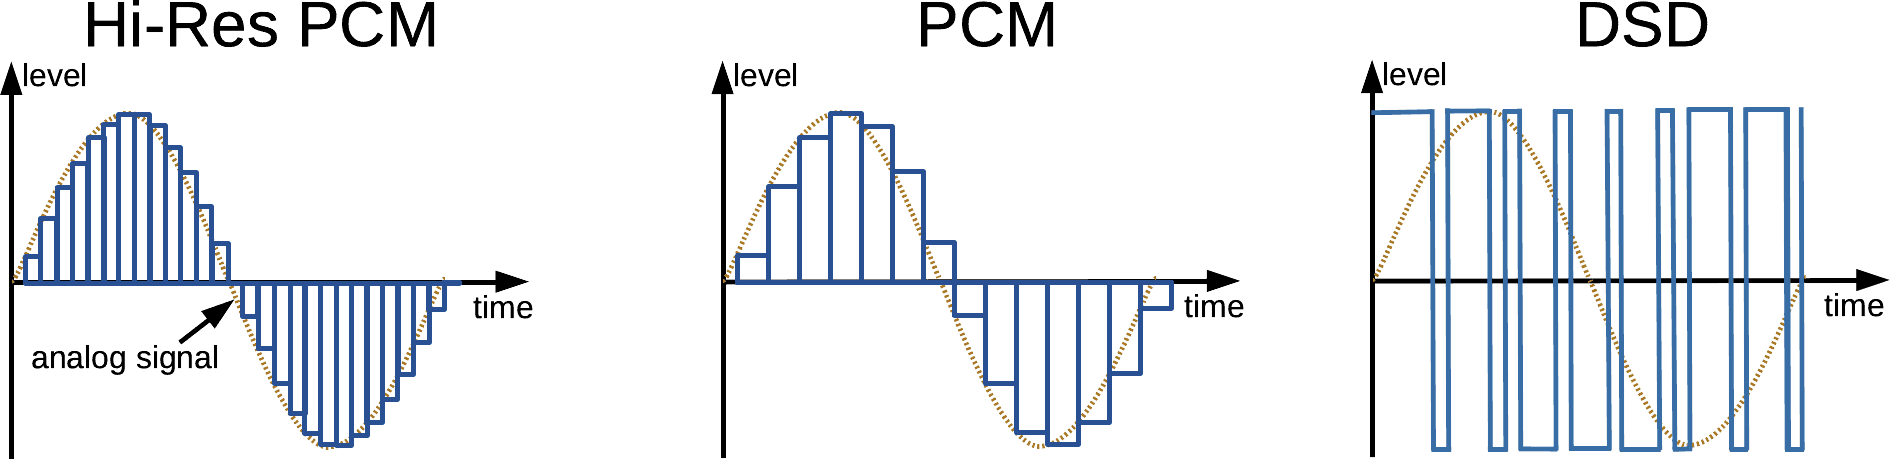 PCM 44.1 kHz / 16 bit vs. High resolution аудио PCM и DSD